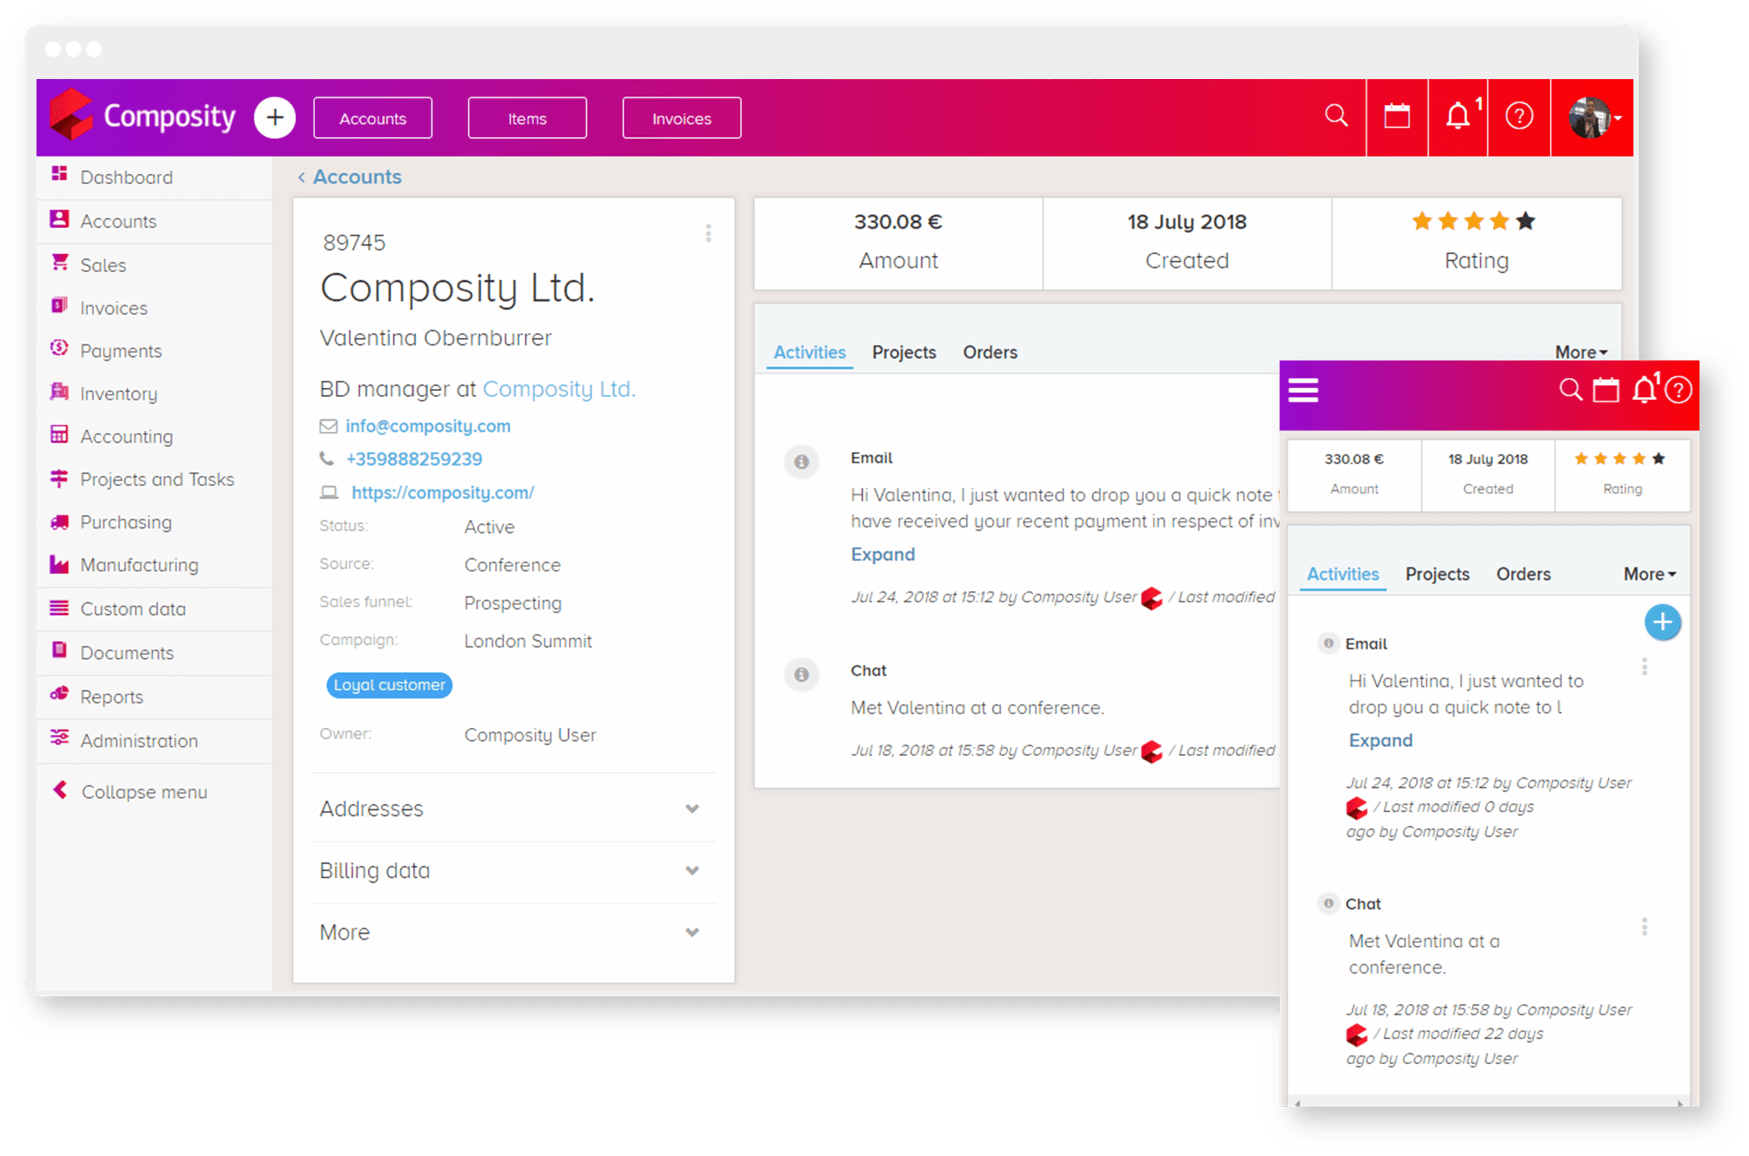 Screenshot of desktop and mobile version of Composity CRM